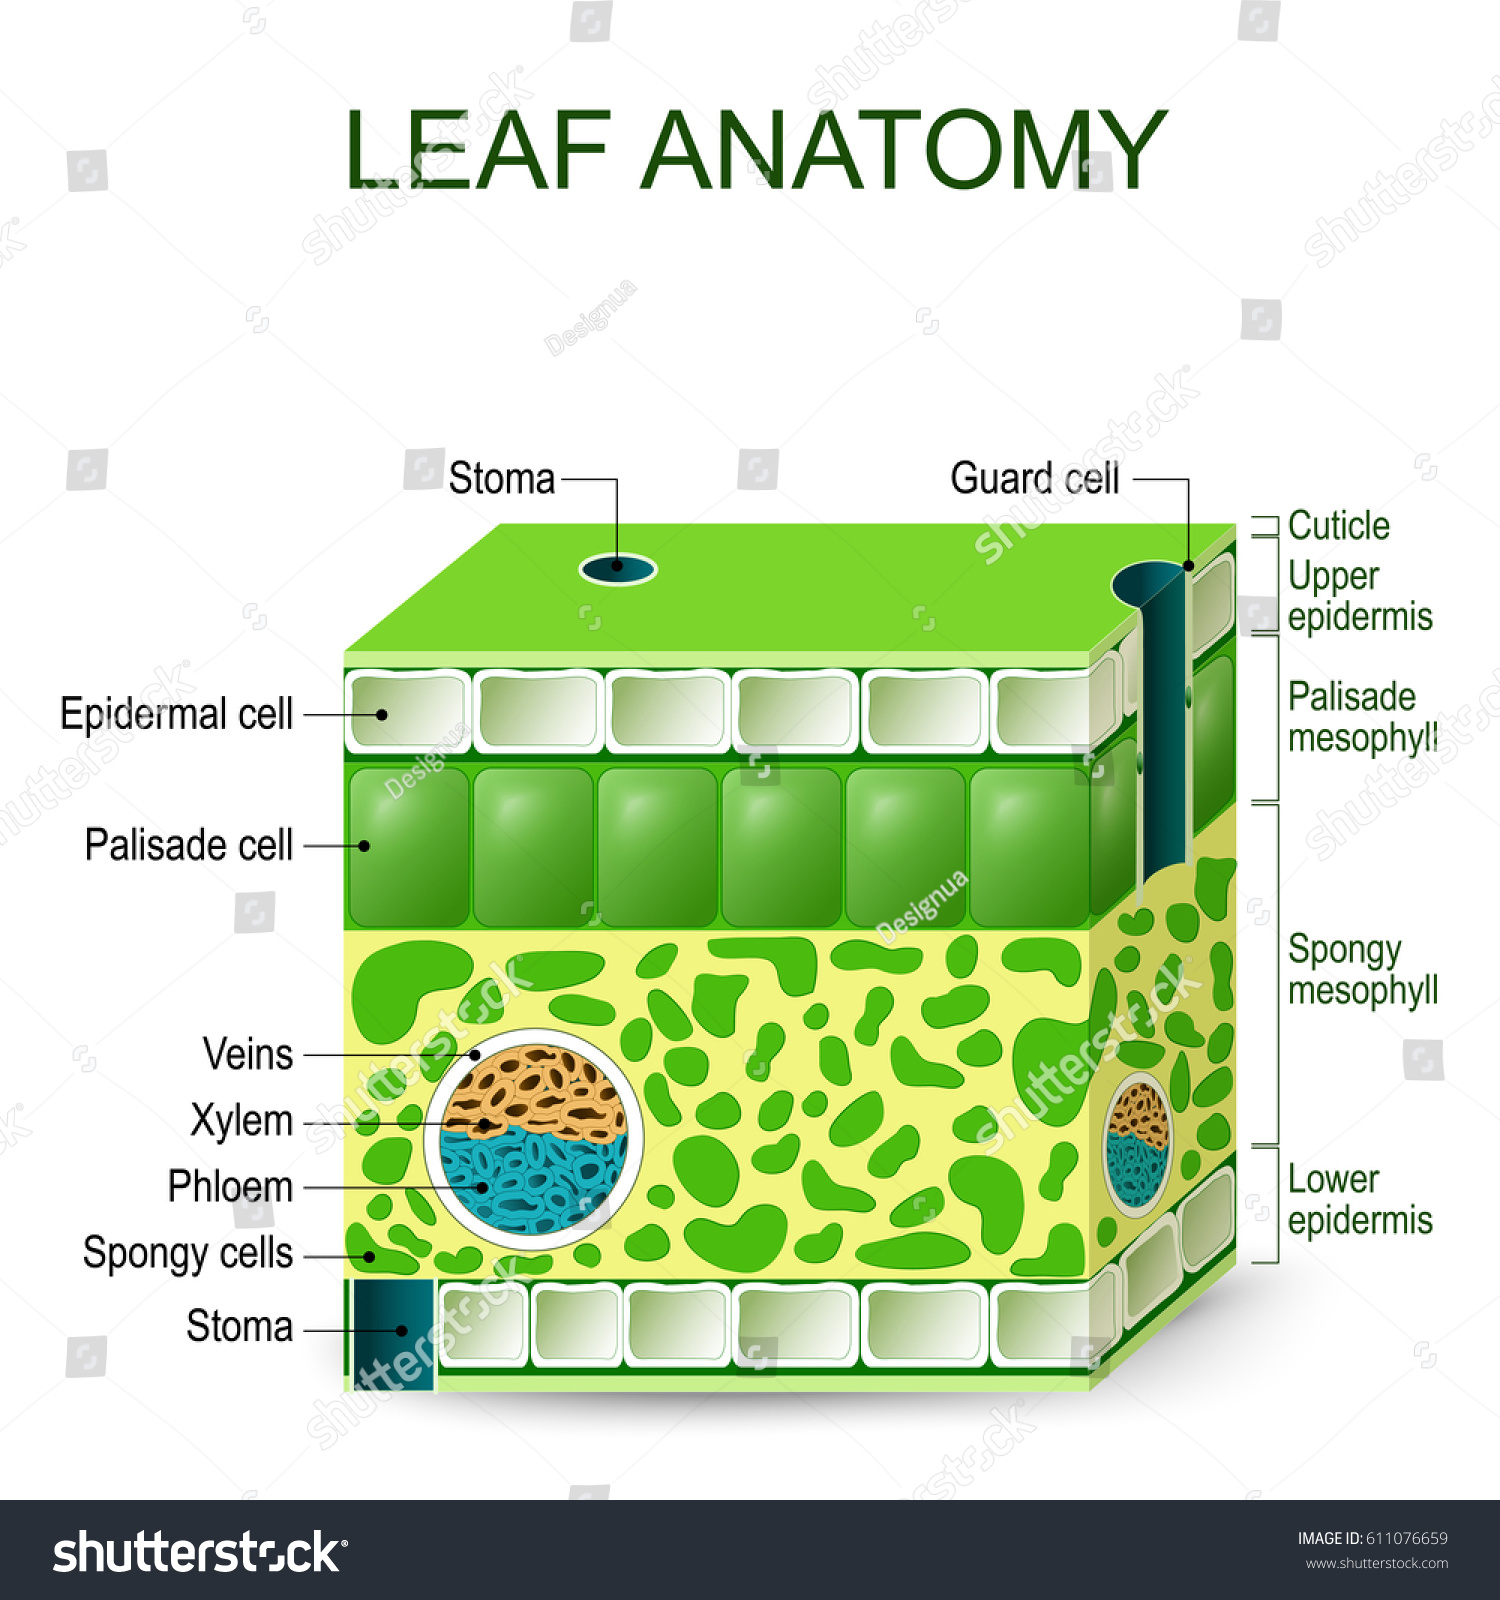 Leaf anatomy vector diagram on white stock vector 611076659 leaf anatomy vector diagram on a white background pooptronica Choice Image